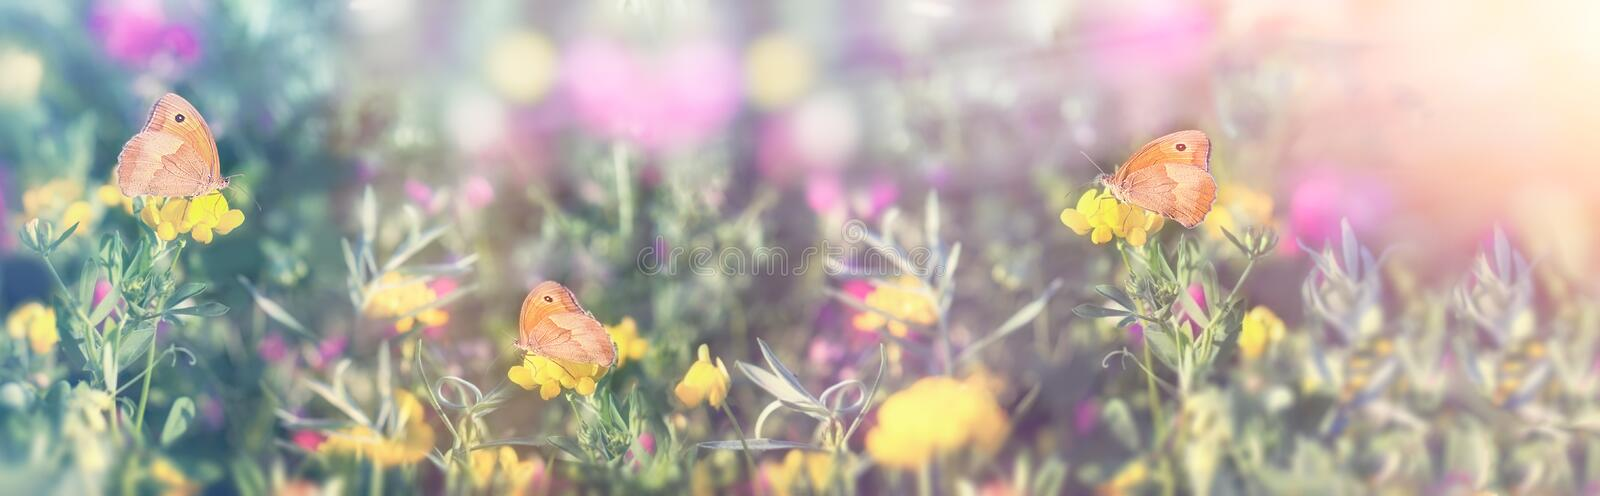 Selective focus on little butterfly - butterflies, beautiful meadow in spring royalty free stock photography